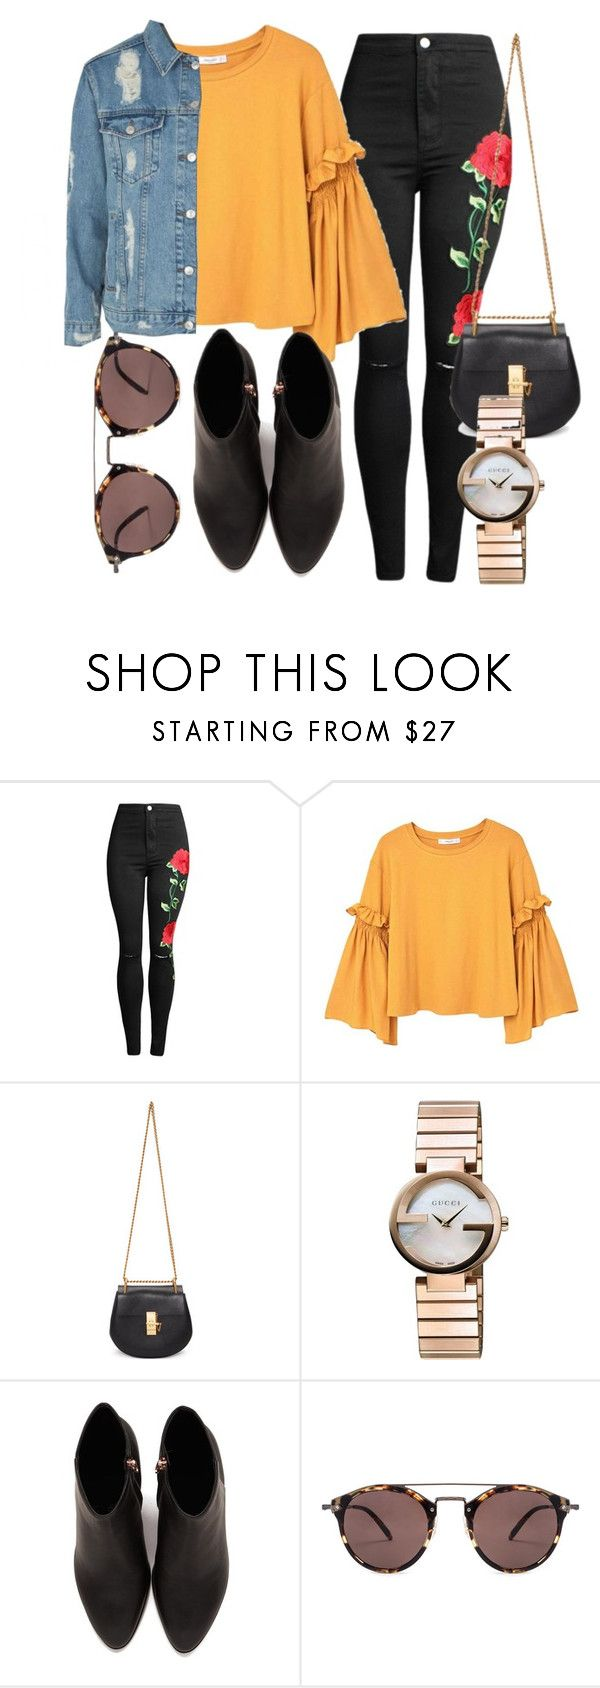 """""""OOTD"""" by lisa98w ❤ liked on Polyvore featuring MANGO, Chloé, Gucci, Alexander Wang, Oliver Peoples and Topshop"""